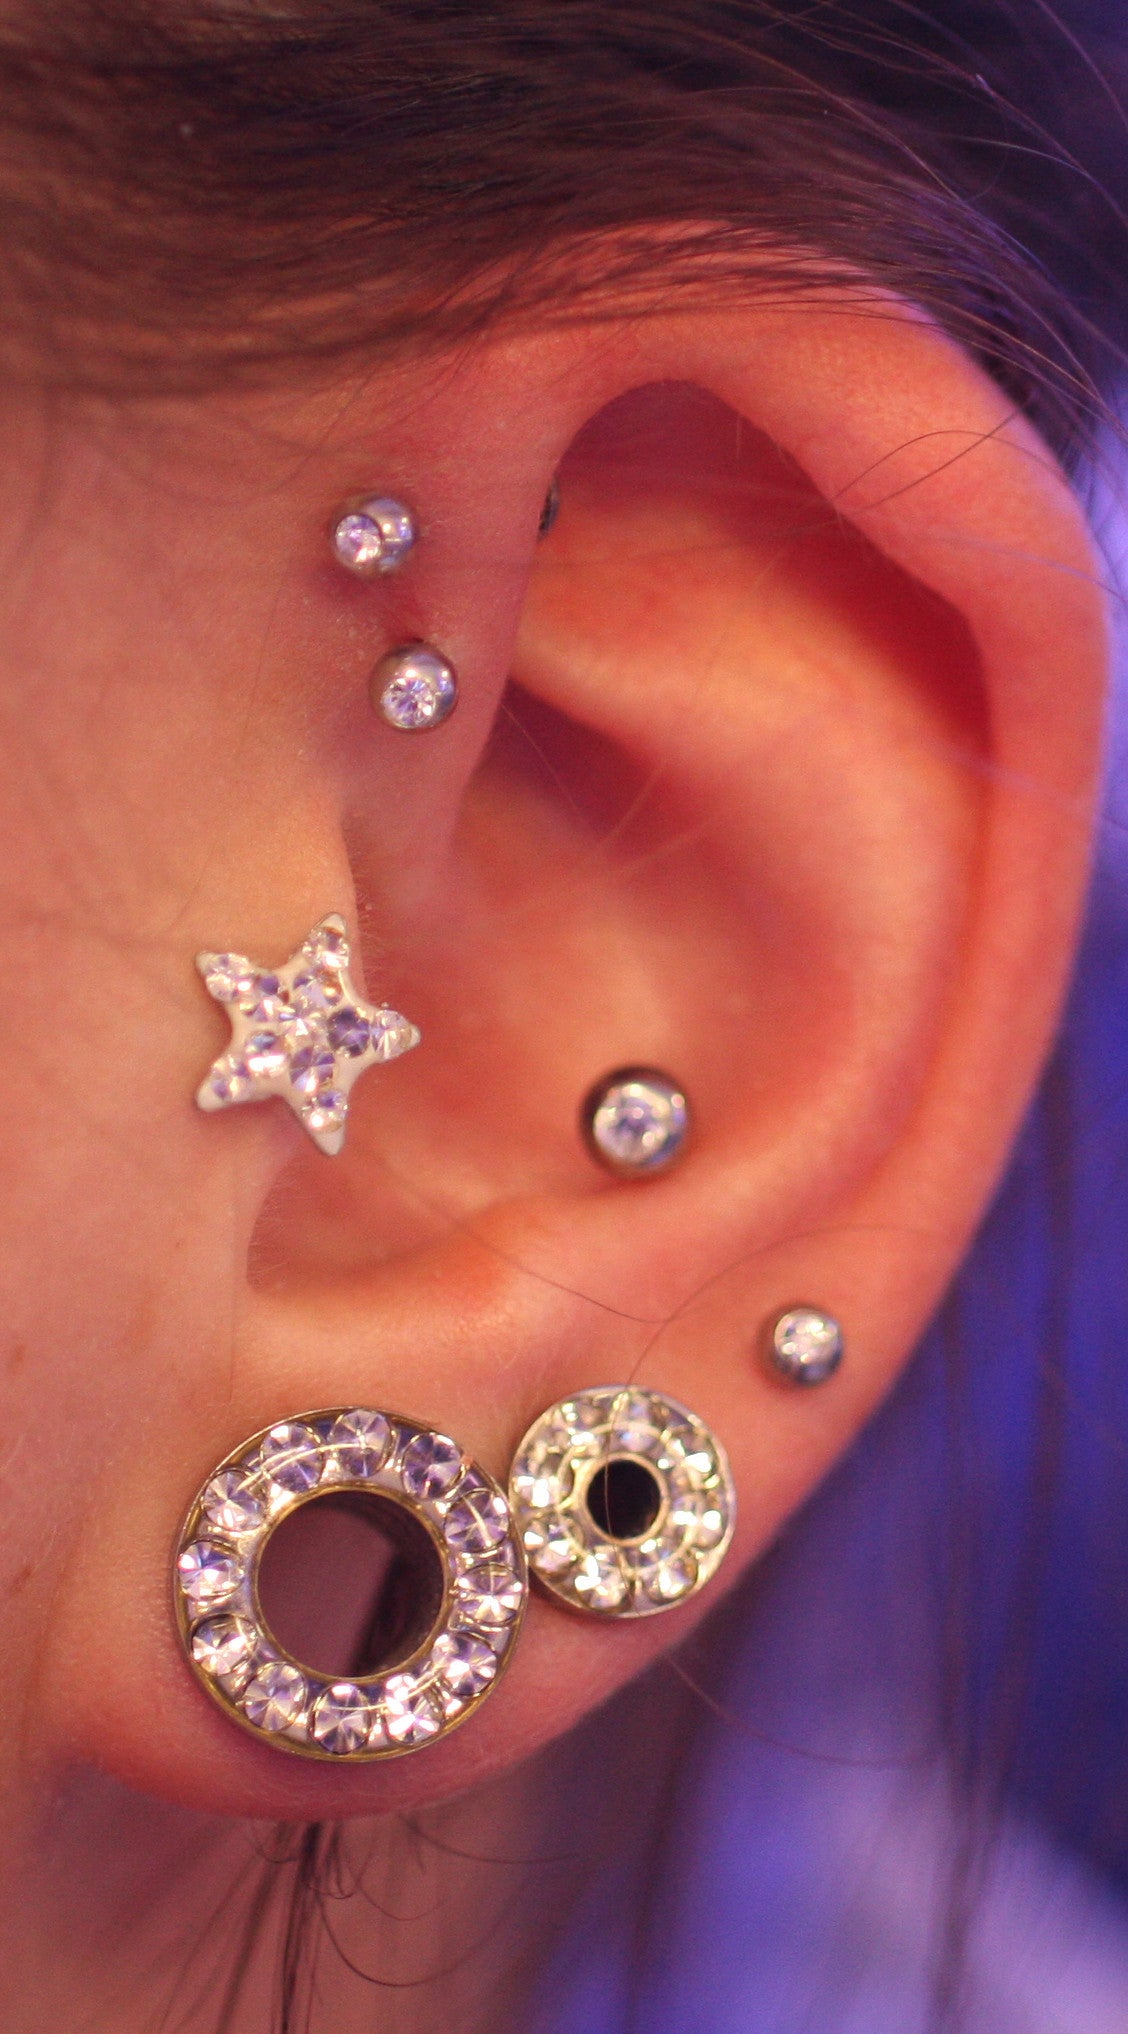 Multiple Unique and Cool Ear Piercings Ideas Silver at MyBodiArt.com - Crystal Star Tragus Ear Stud Triple Forward Helix Earrings Conch Auricle Barbell Crystal Ear Gauges